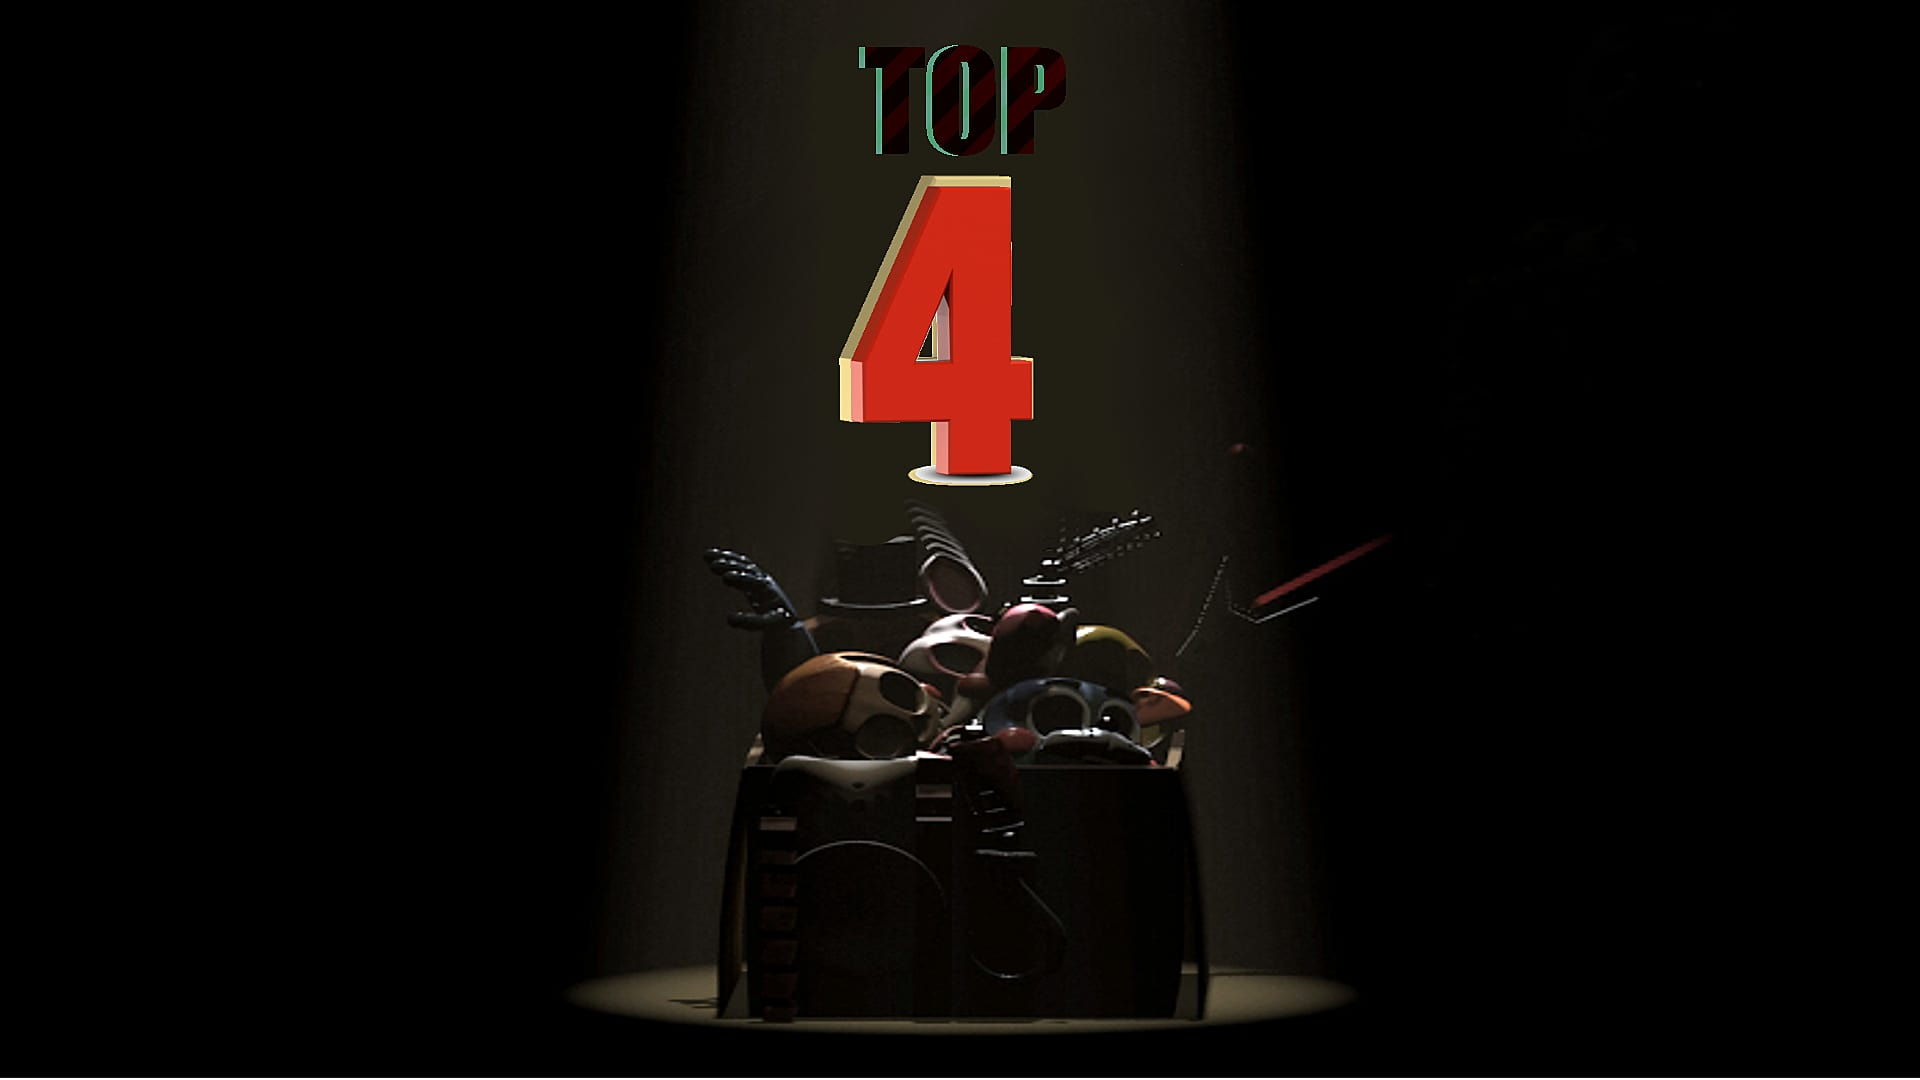 Top 4 Fan-Made Games Five Nights at Freddy's Fans Should Play | Five